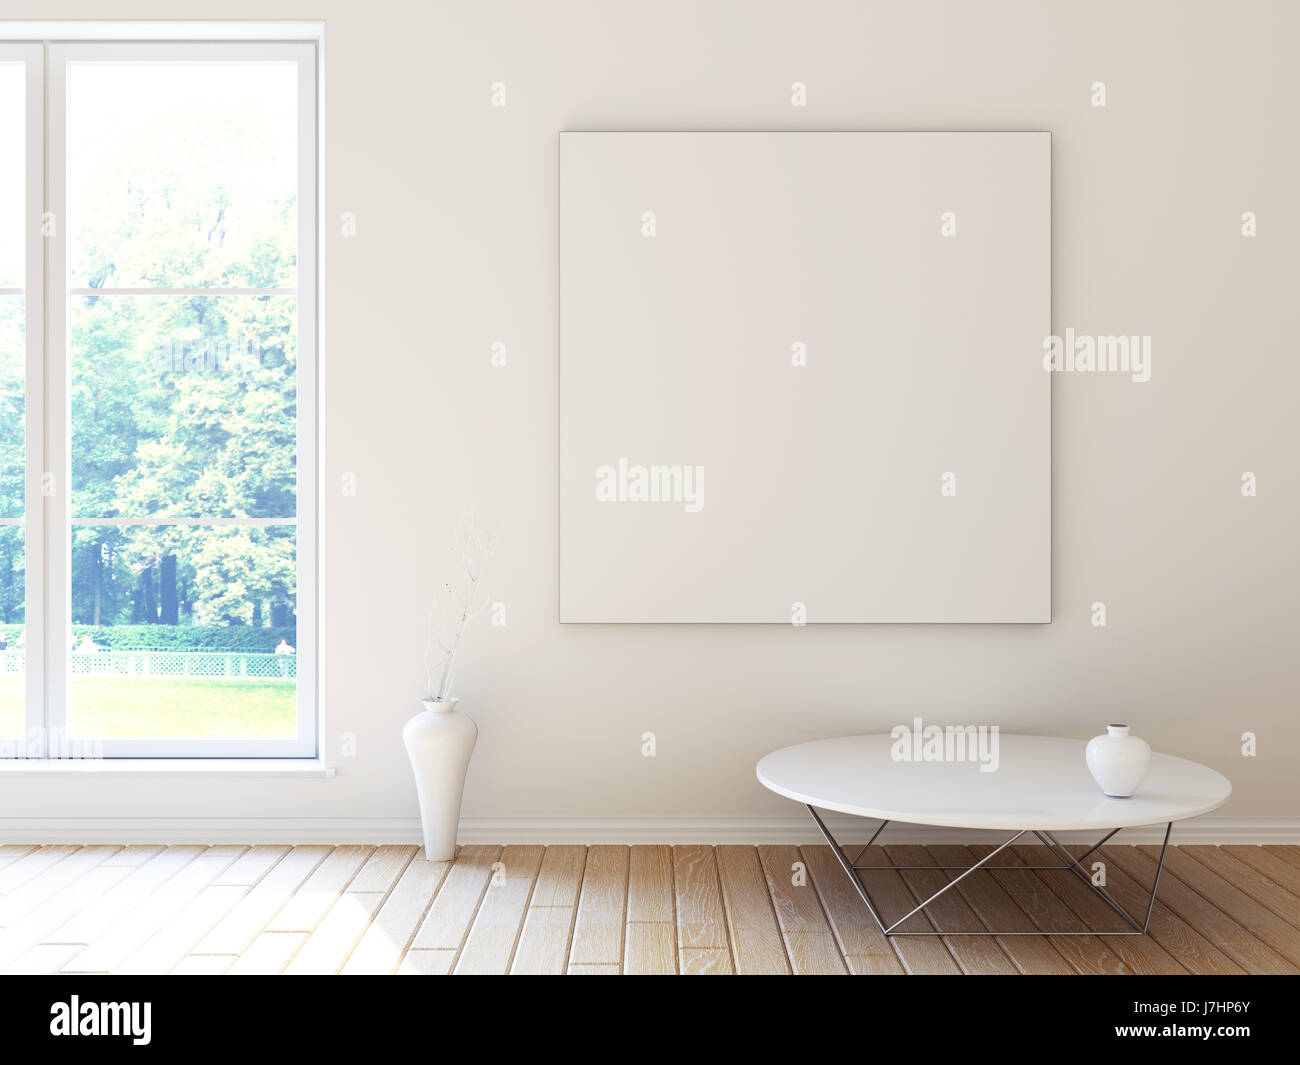 Interior Mockup Illustration Of White Room With Window And Blank Square Board On The Wall